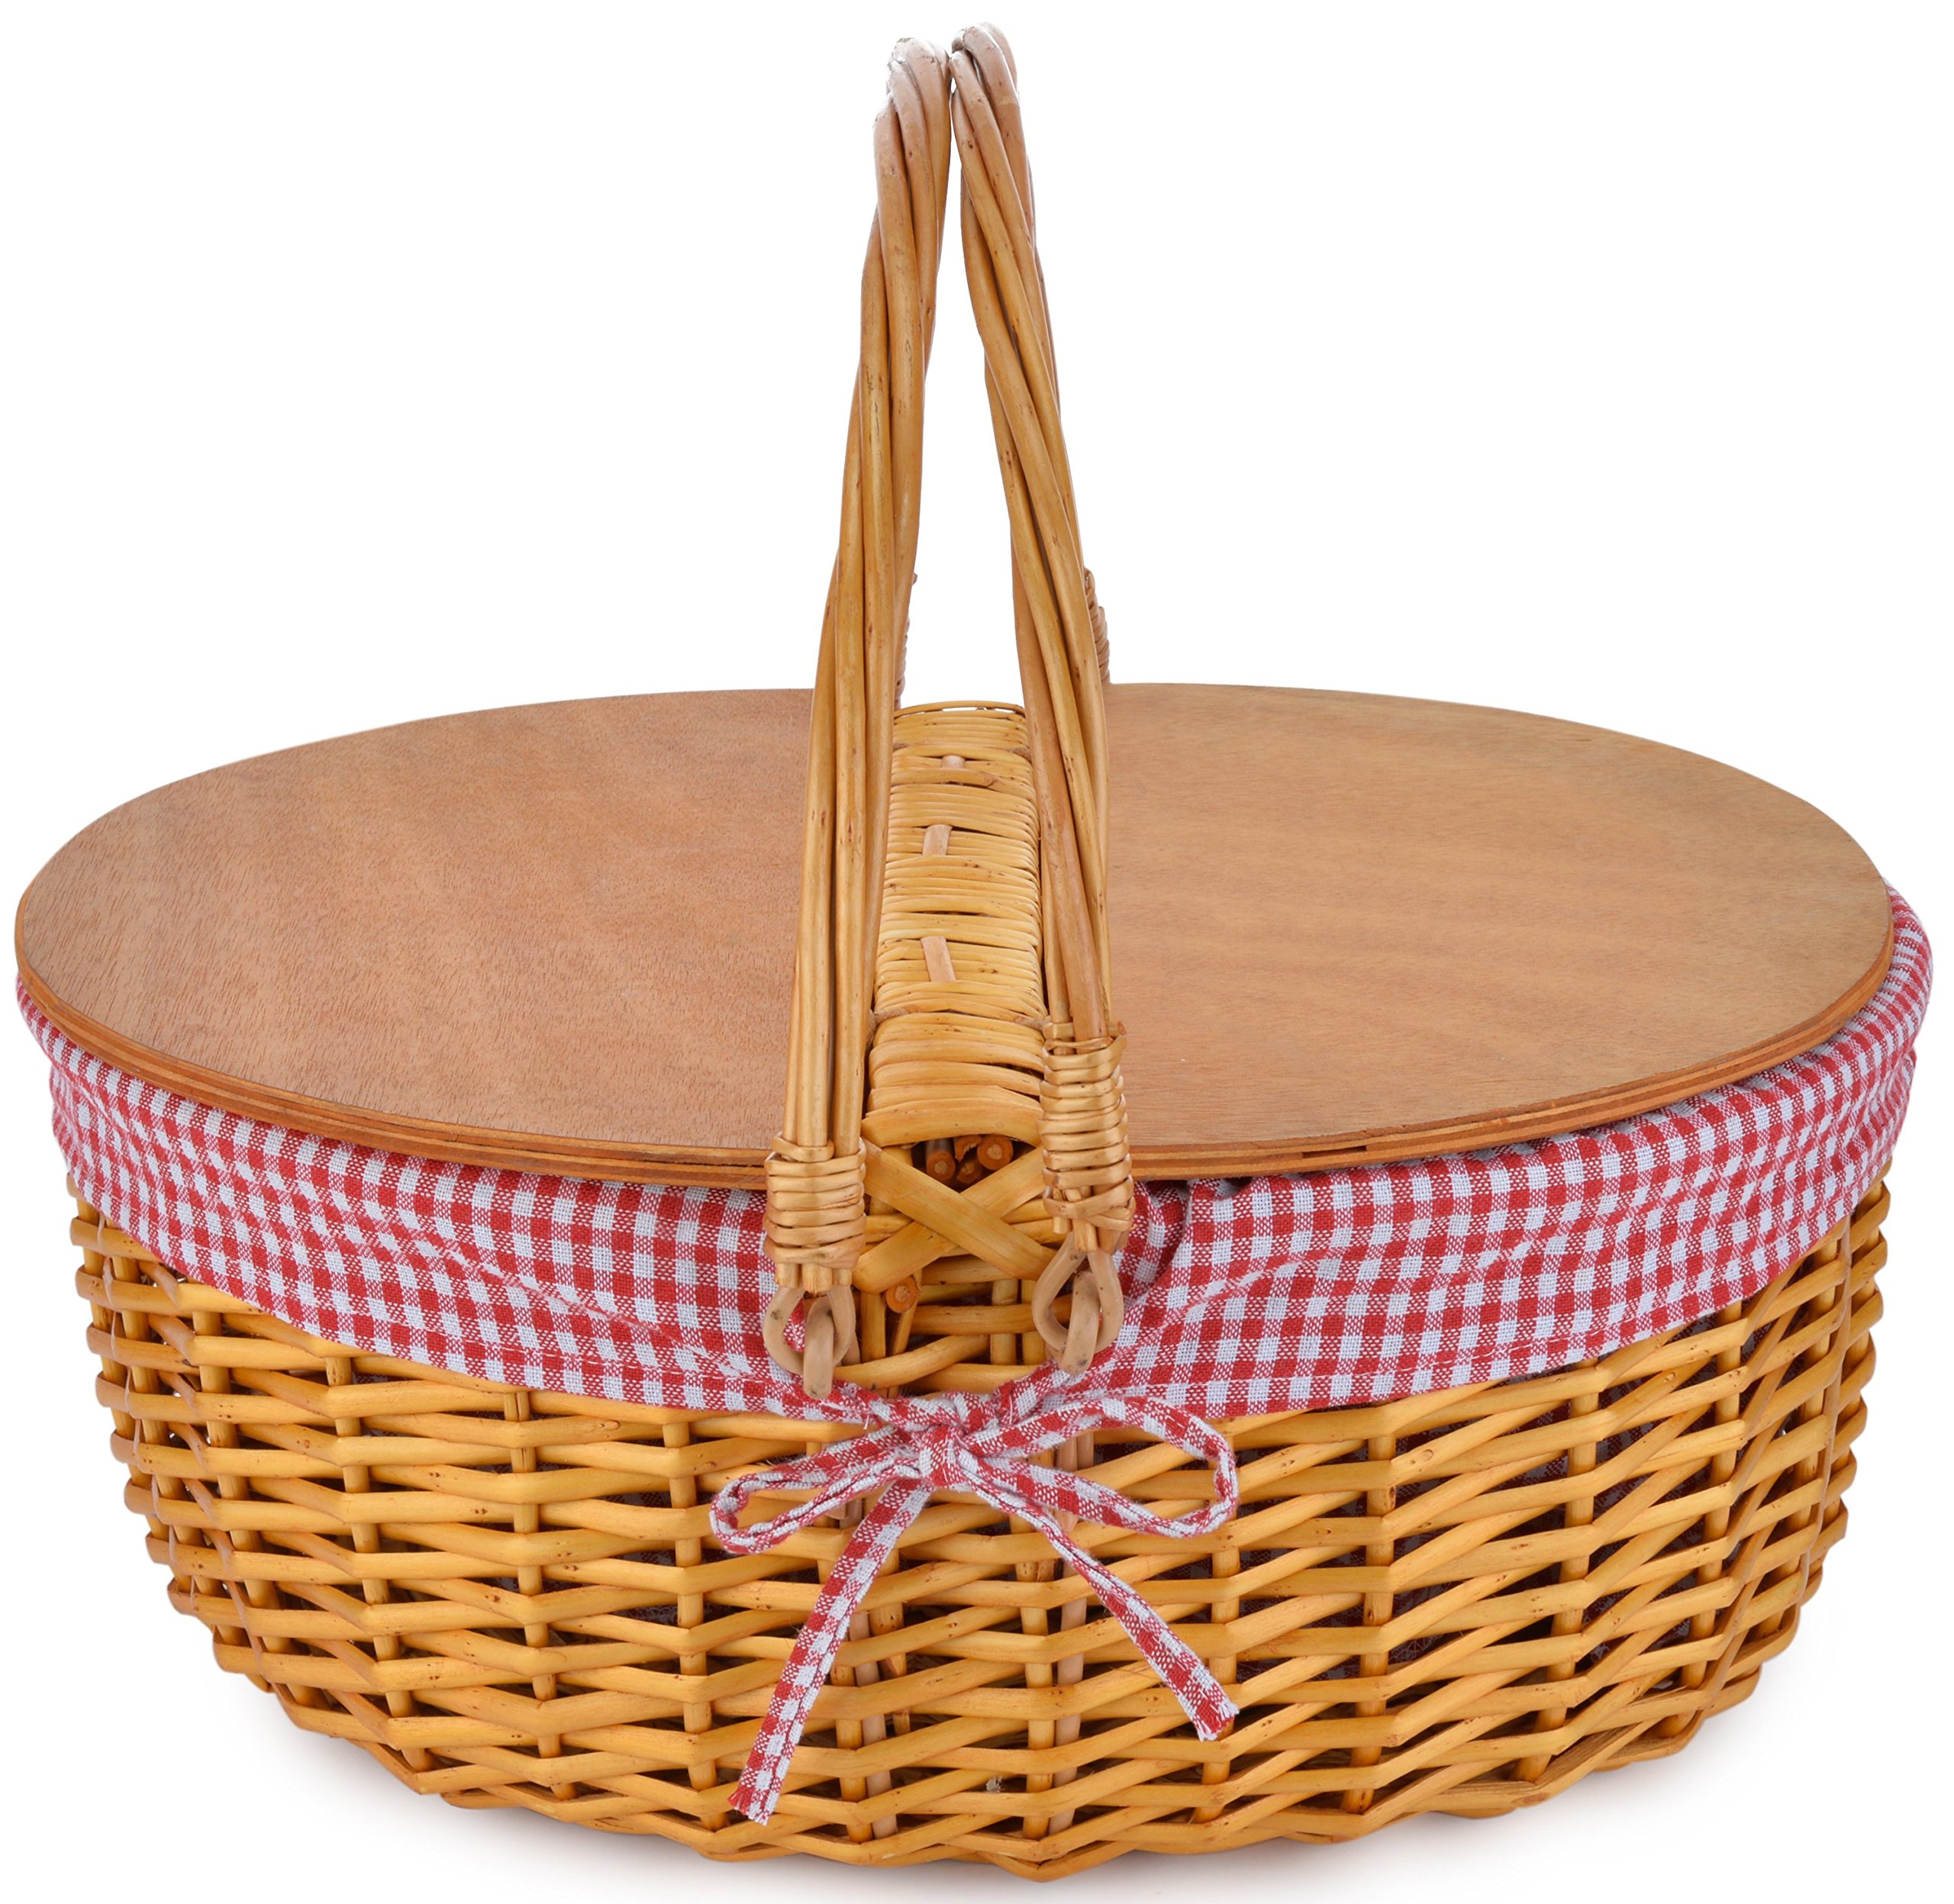 Picnic Basket with Double Folding Handles | Hard Wood Top | Hand Woven Wicker Great for Easter Basket | Storage of Plastic Easter Eggs and Easter Candy | Organizer Blanket Storage